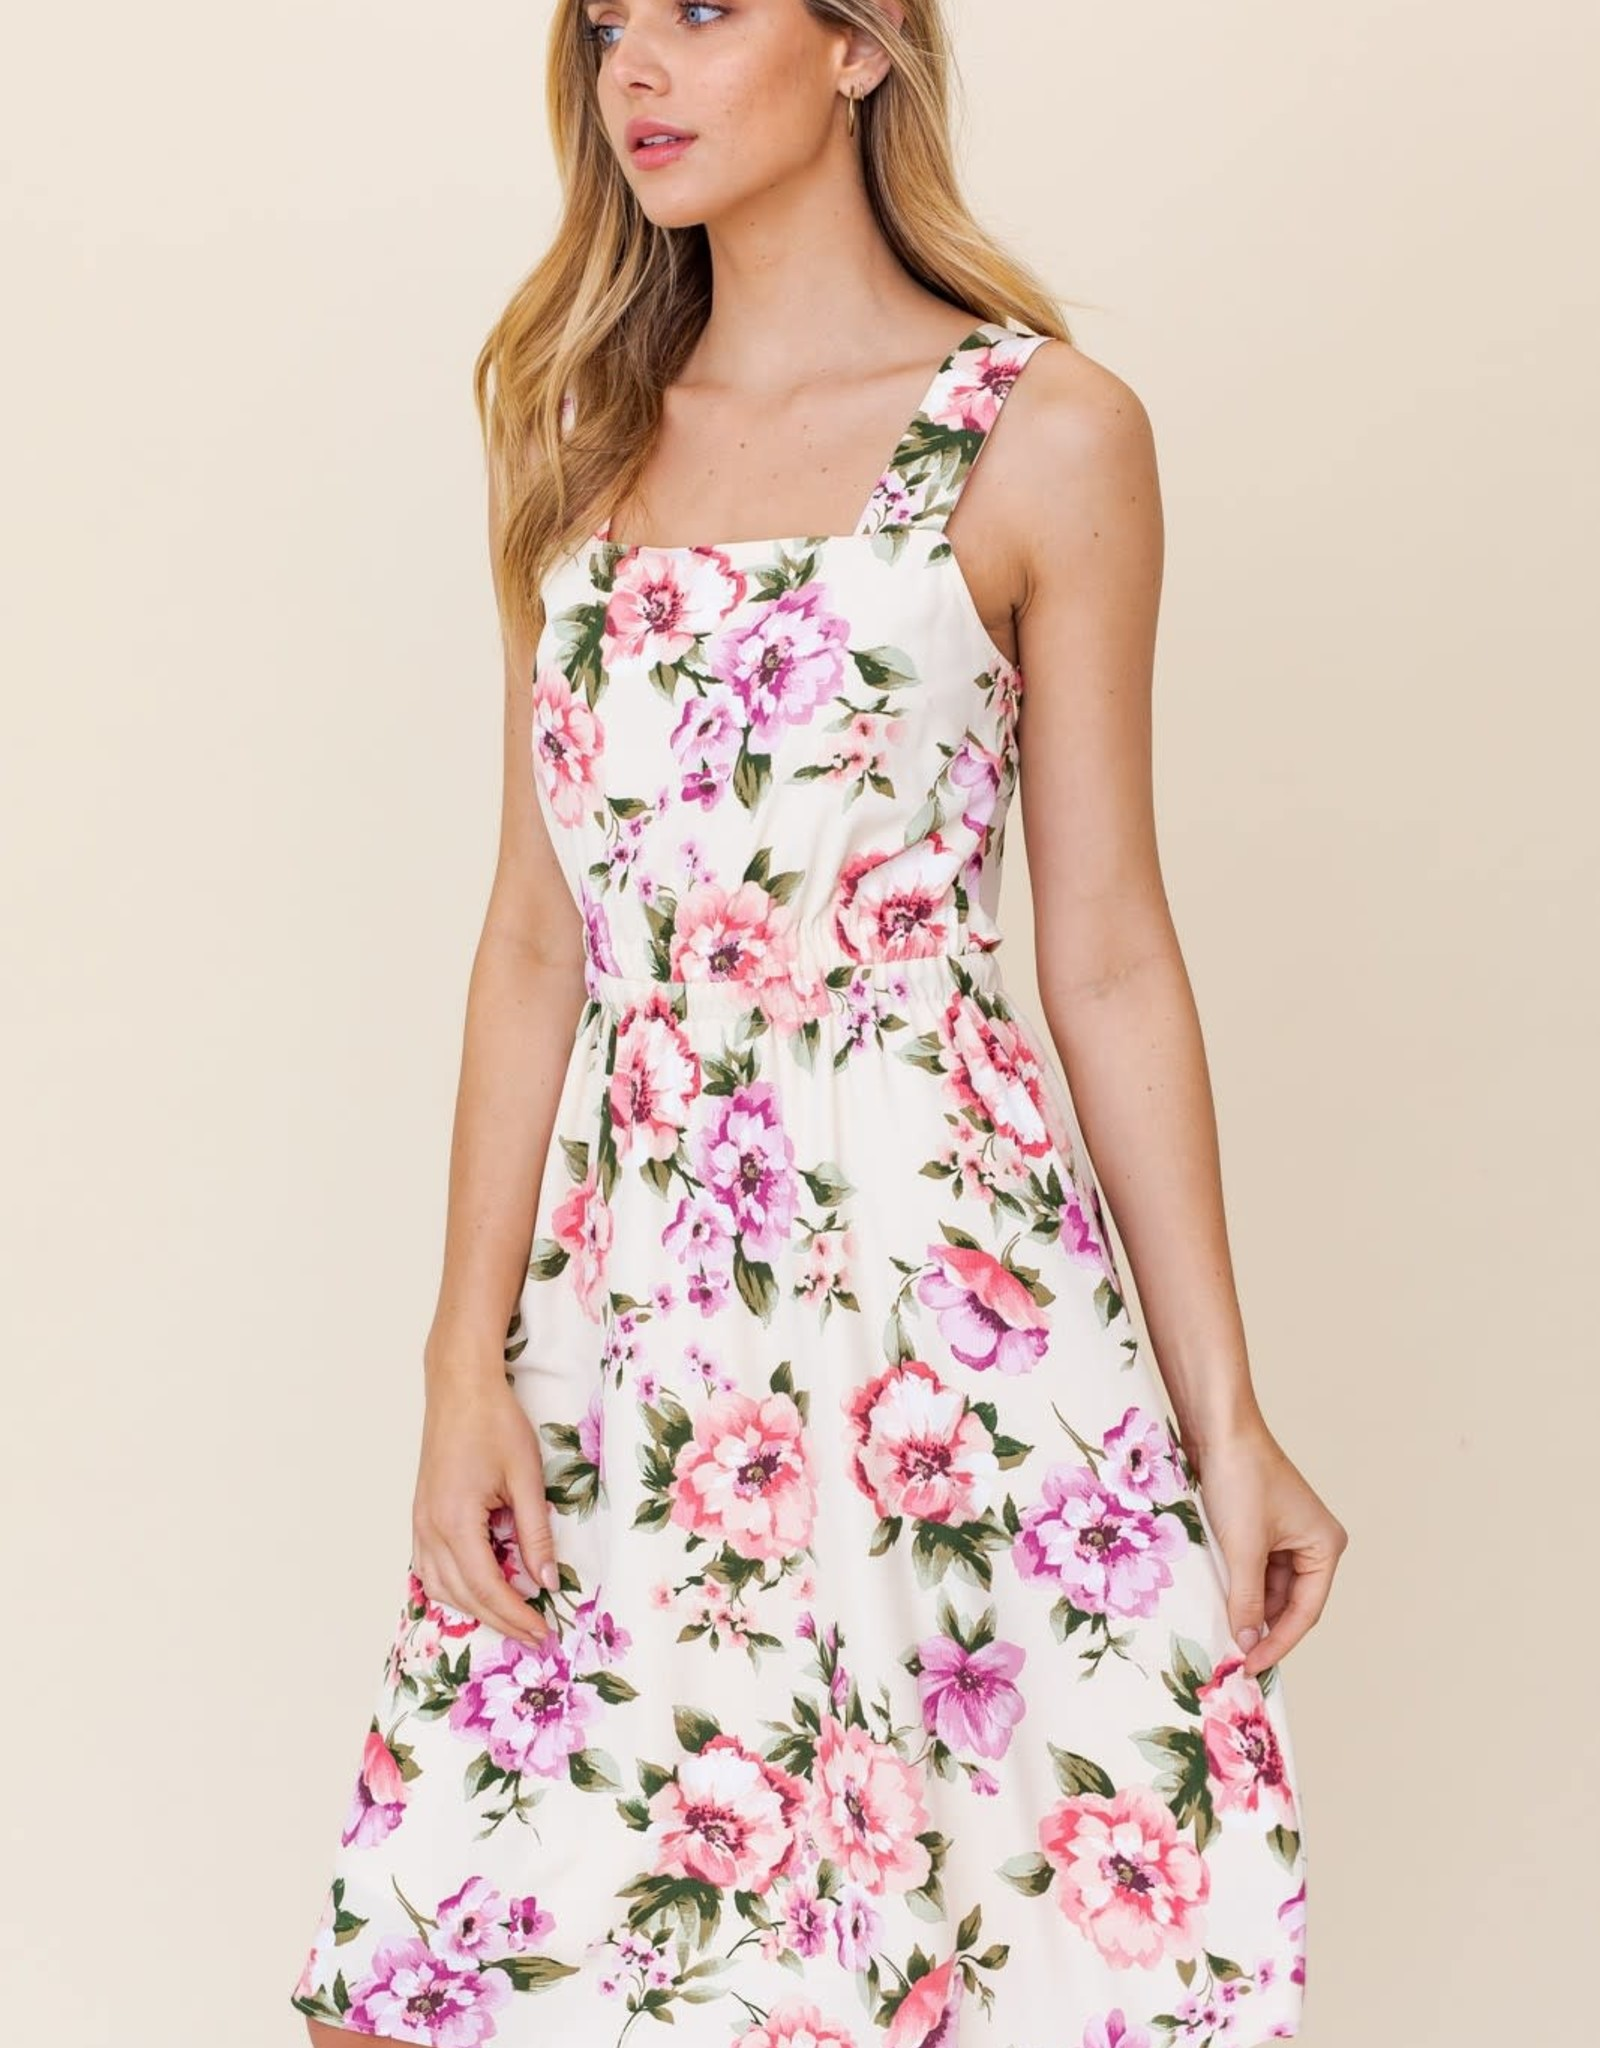 Miss Bliss Floral Print Midi Dress With Open Back- Cream